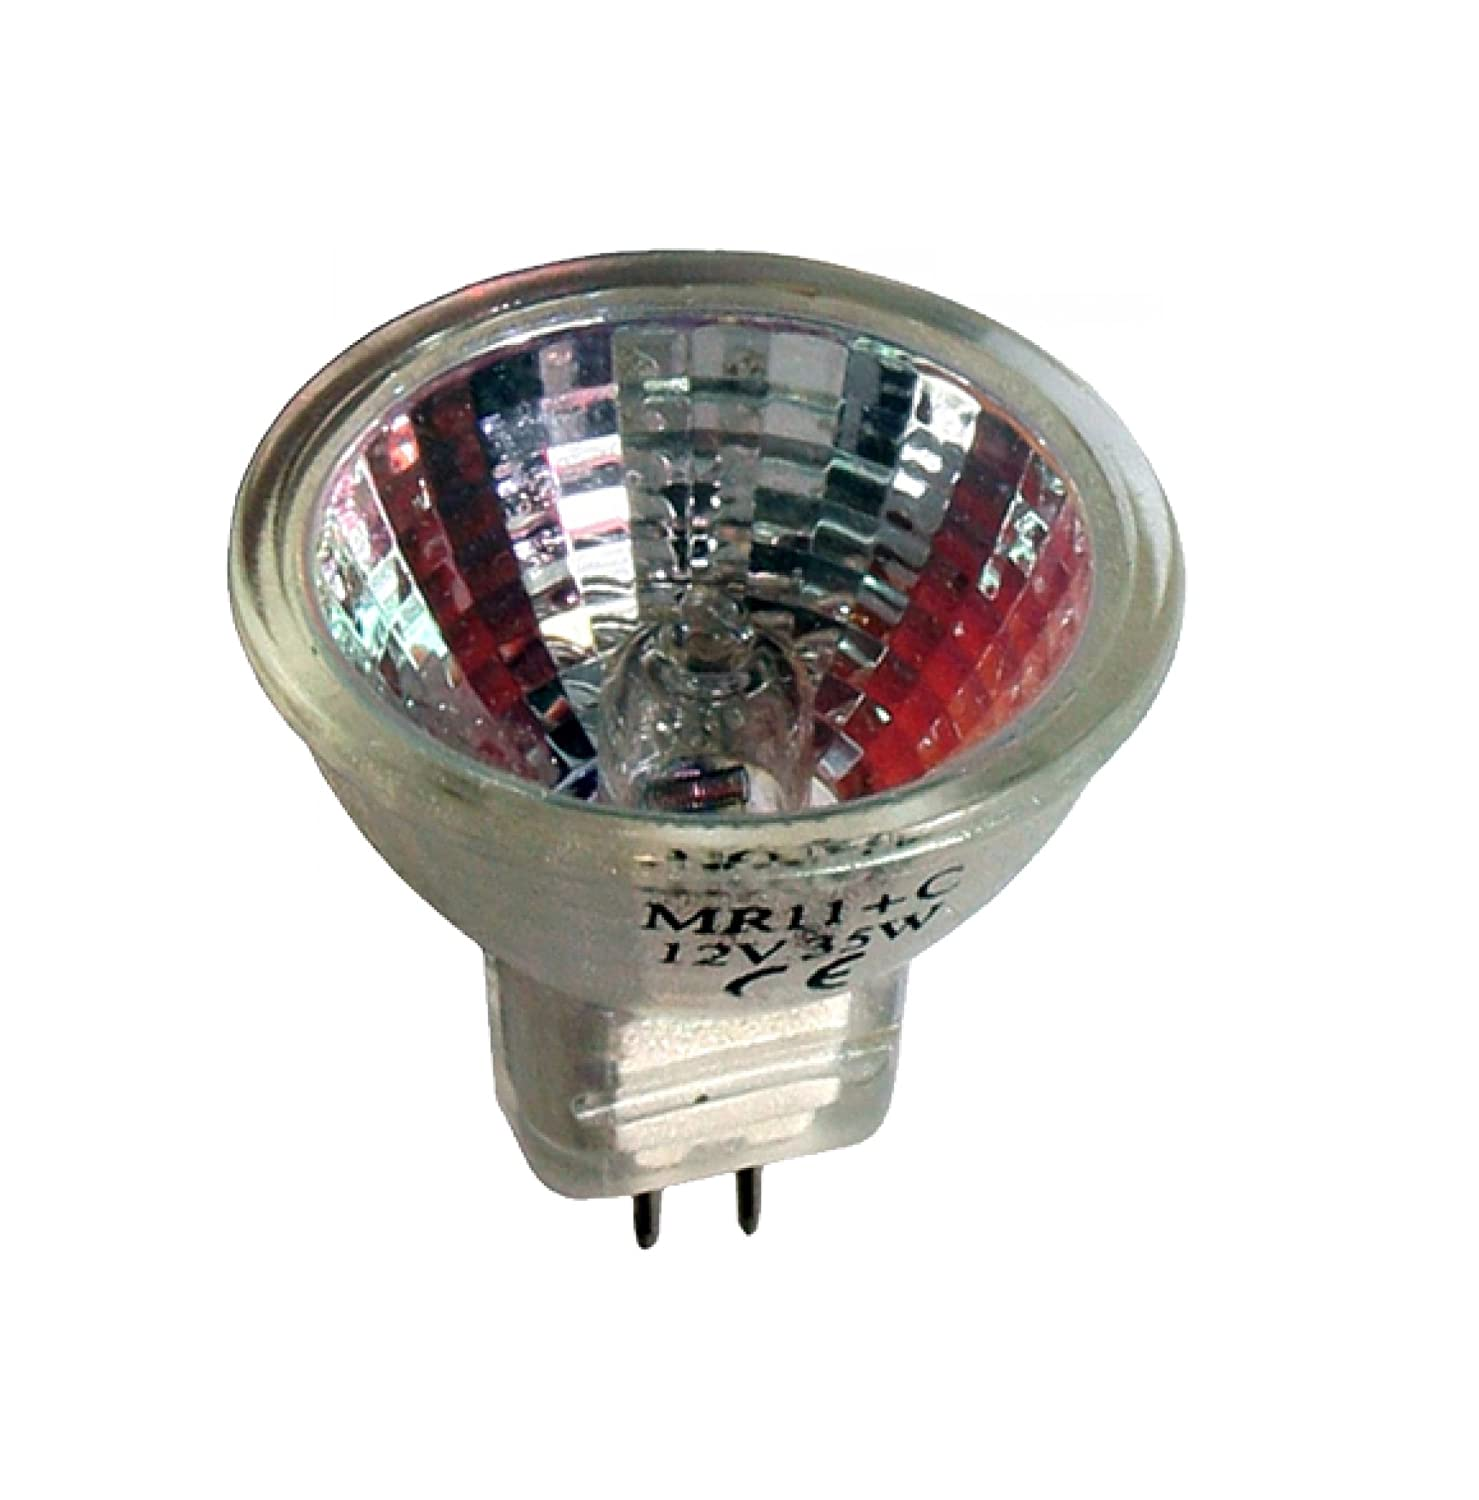 Pro-Lite 5w MR11 12v Halogen spot light bulb (GU4, fibre optics, low voltage) 044365